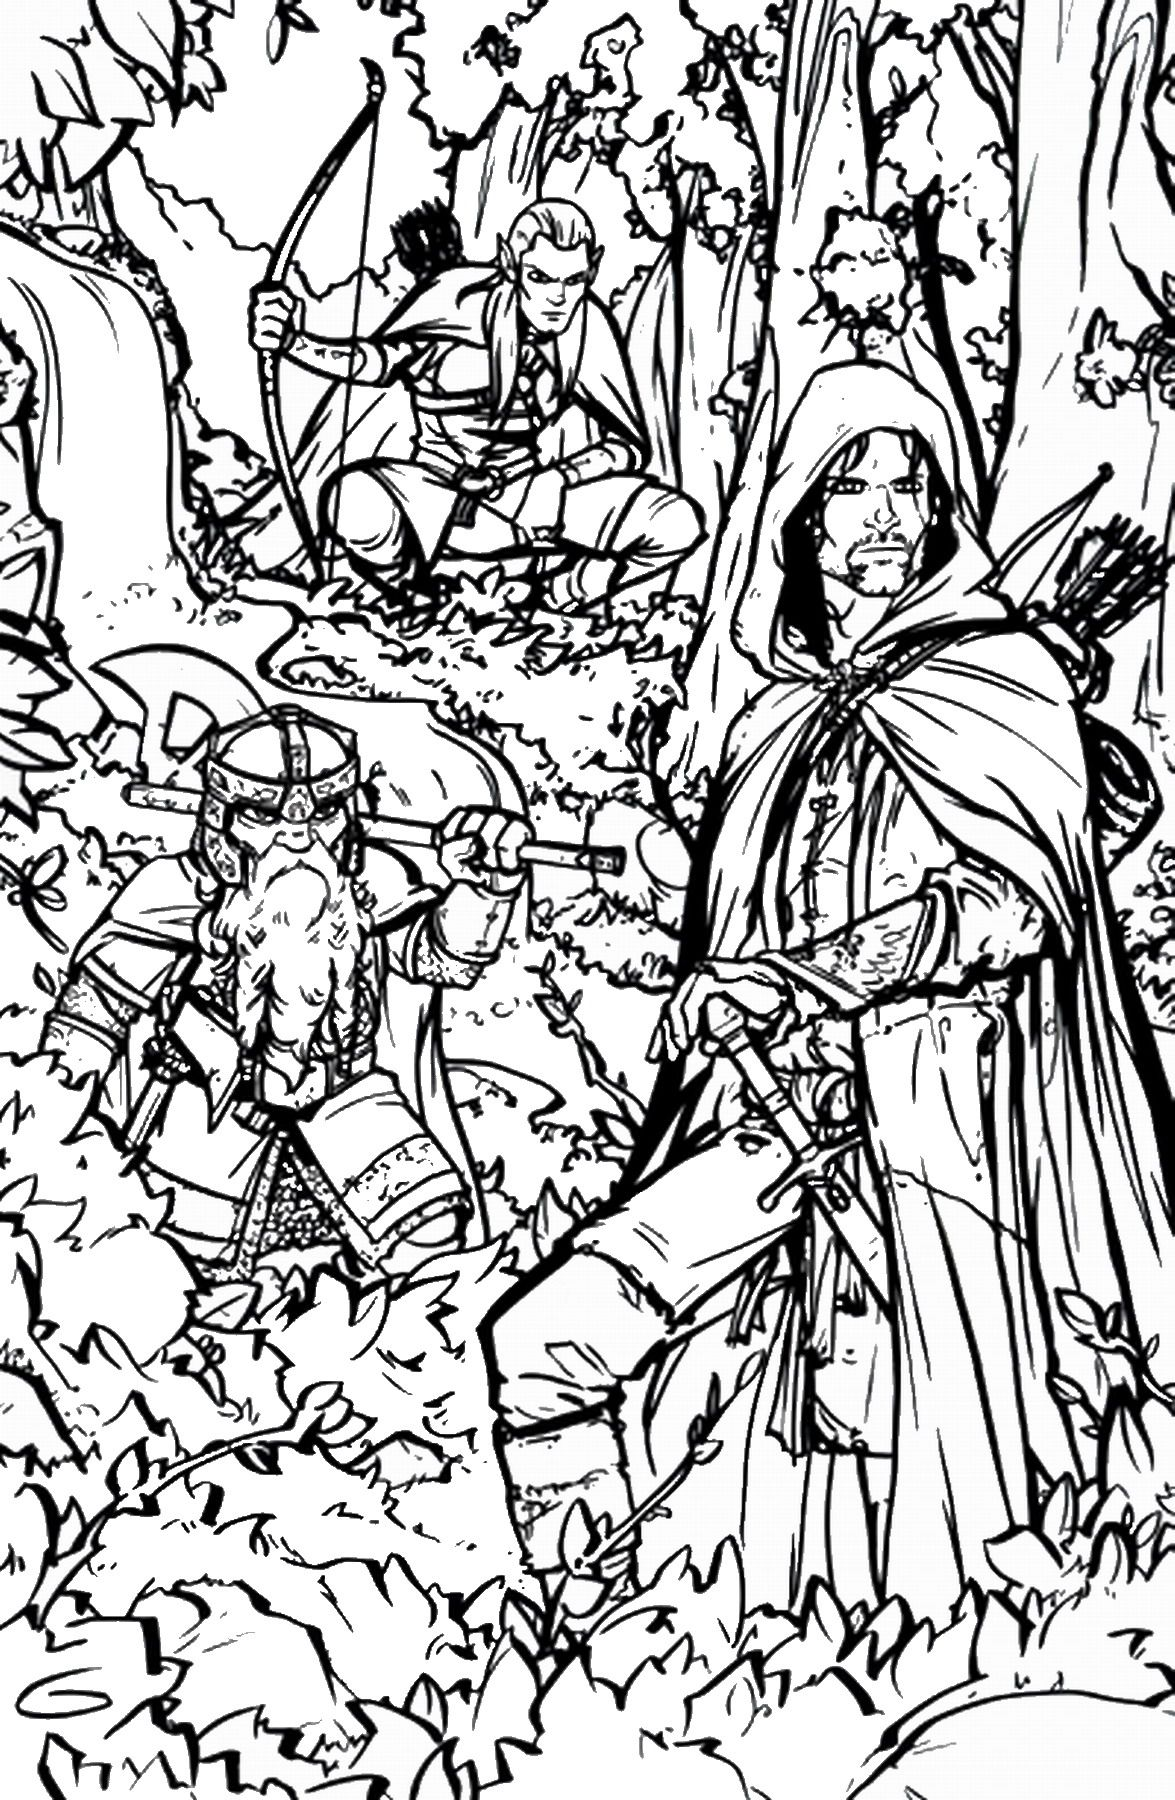 Lord of the Rings Coloring Pages | Coloring :) | Pinterest | Señor ...